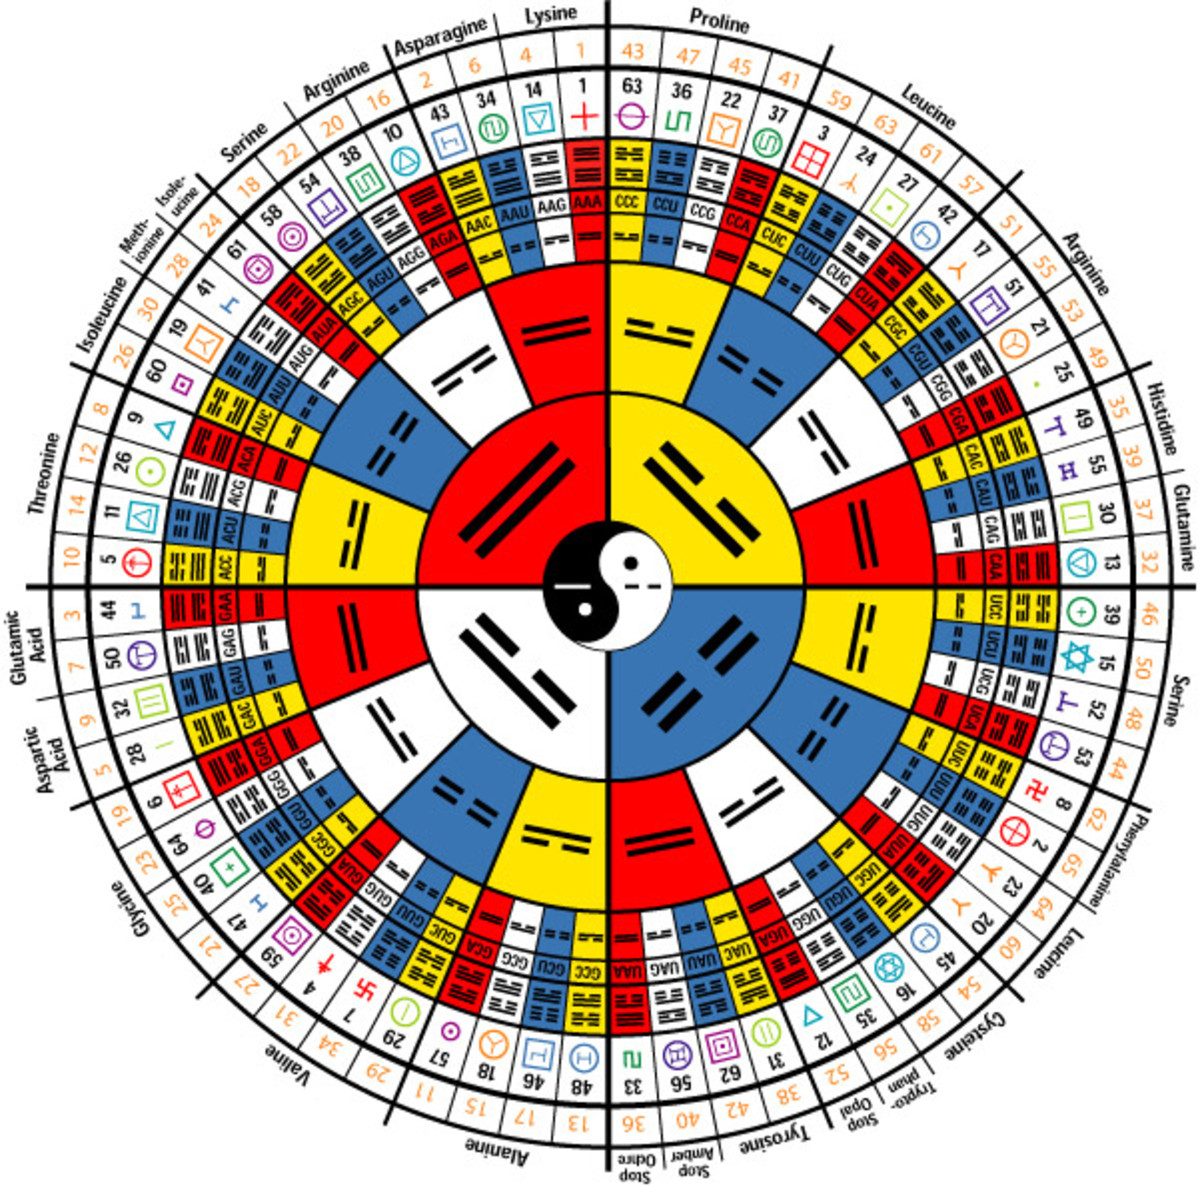 The I Ching or The Book of Changes, follows much of the double helix hexagrams similar to DNA.